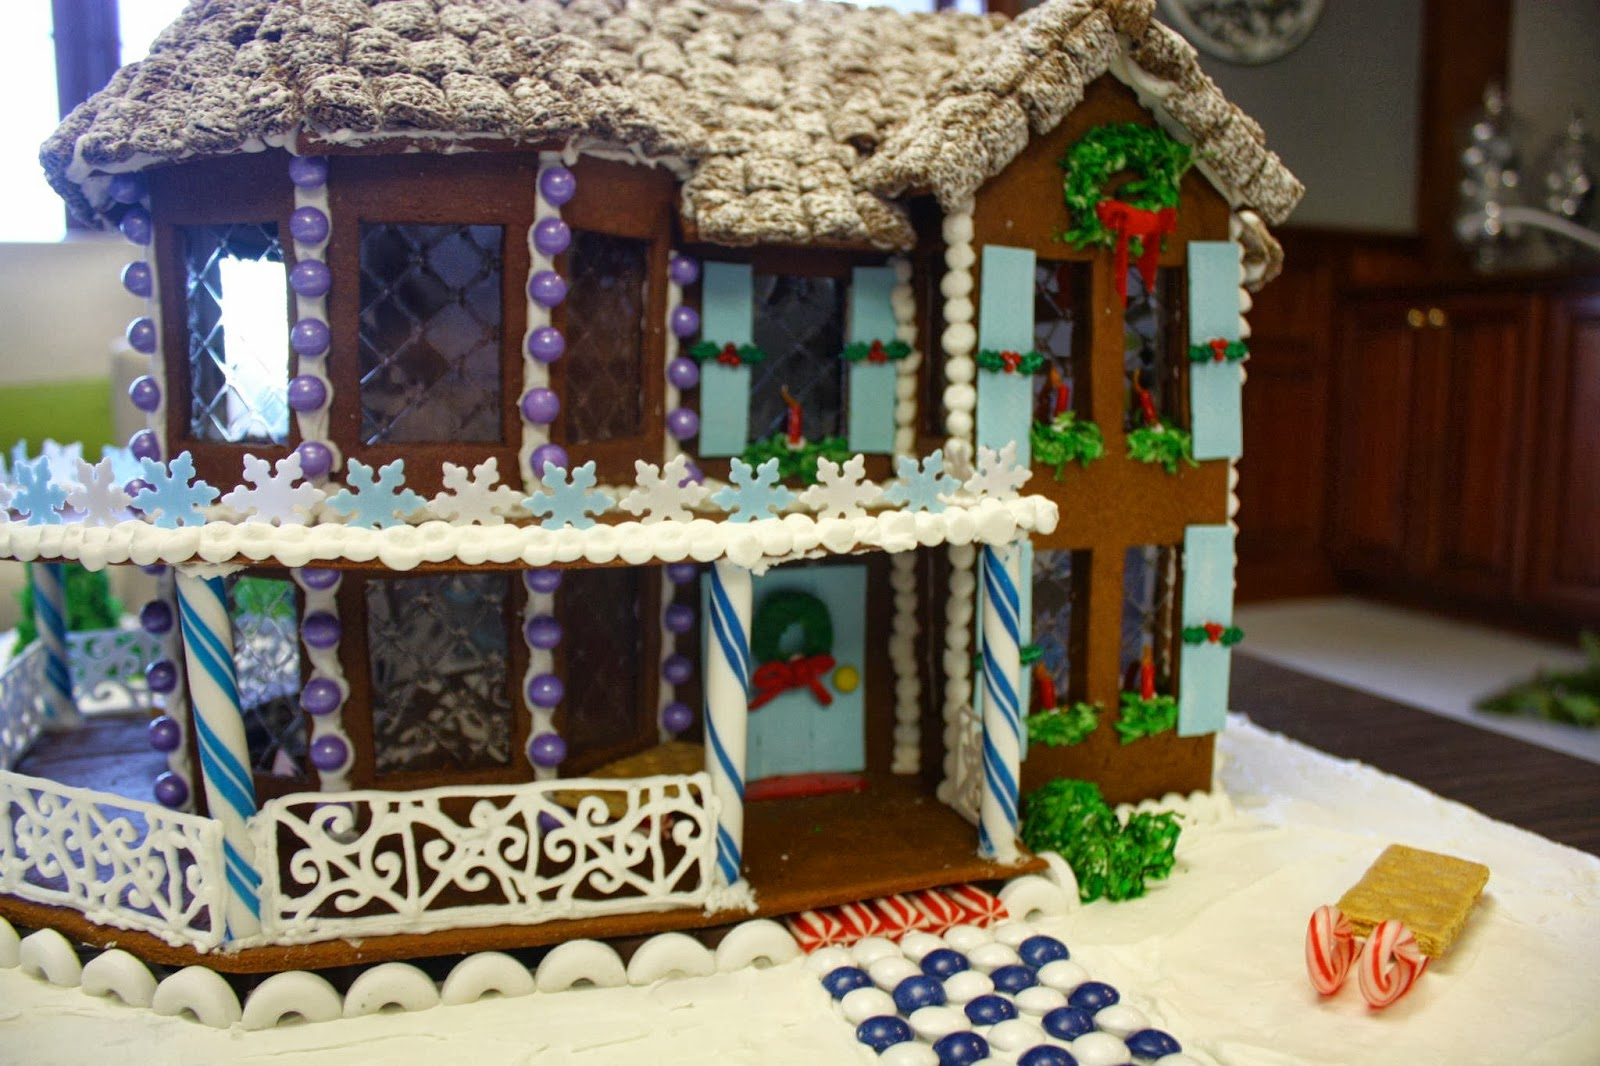 Victorian Gingerbread House Template Effingham gingerbread house by